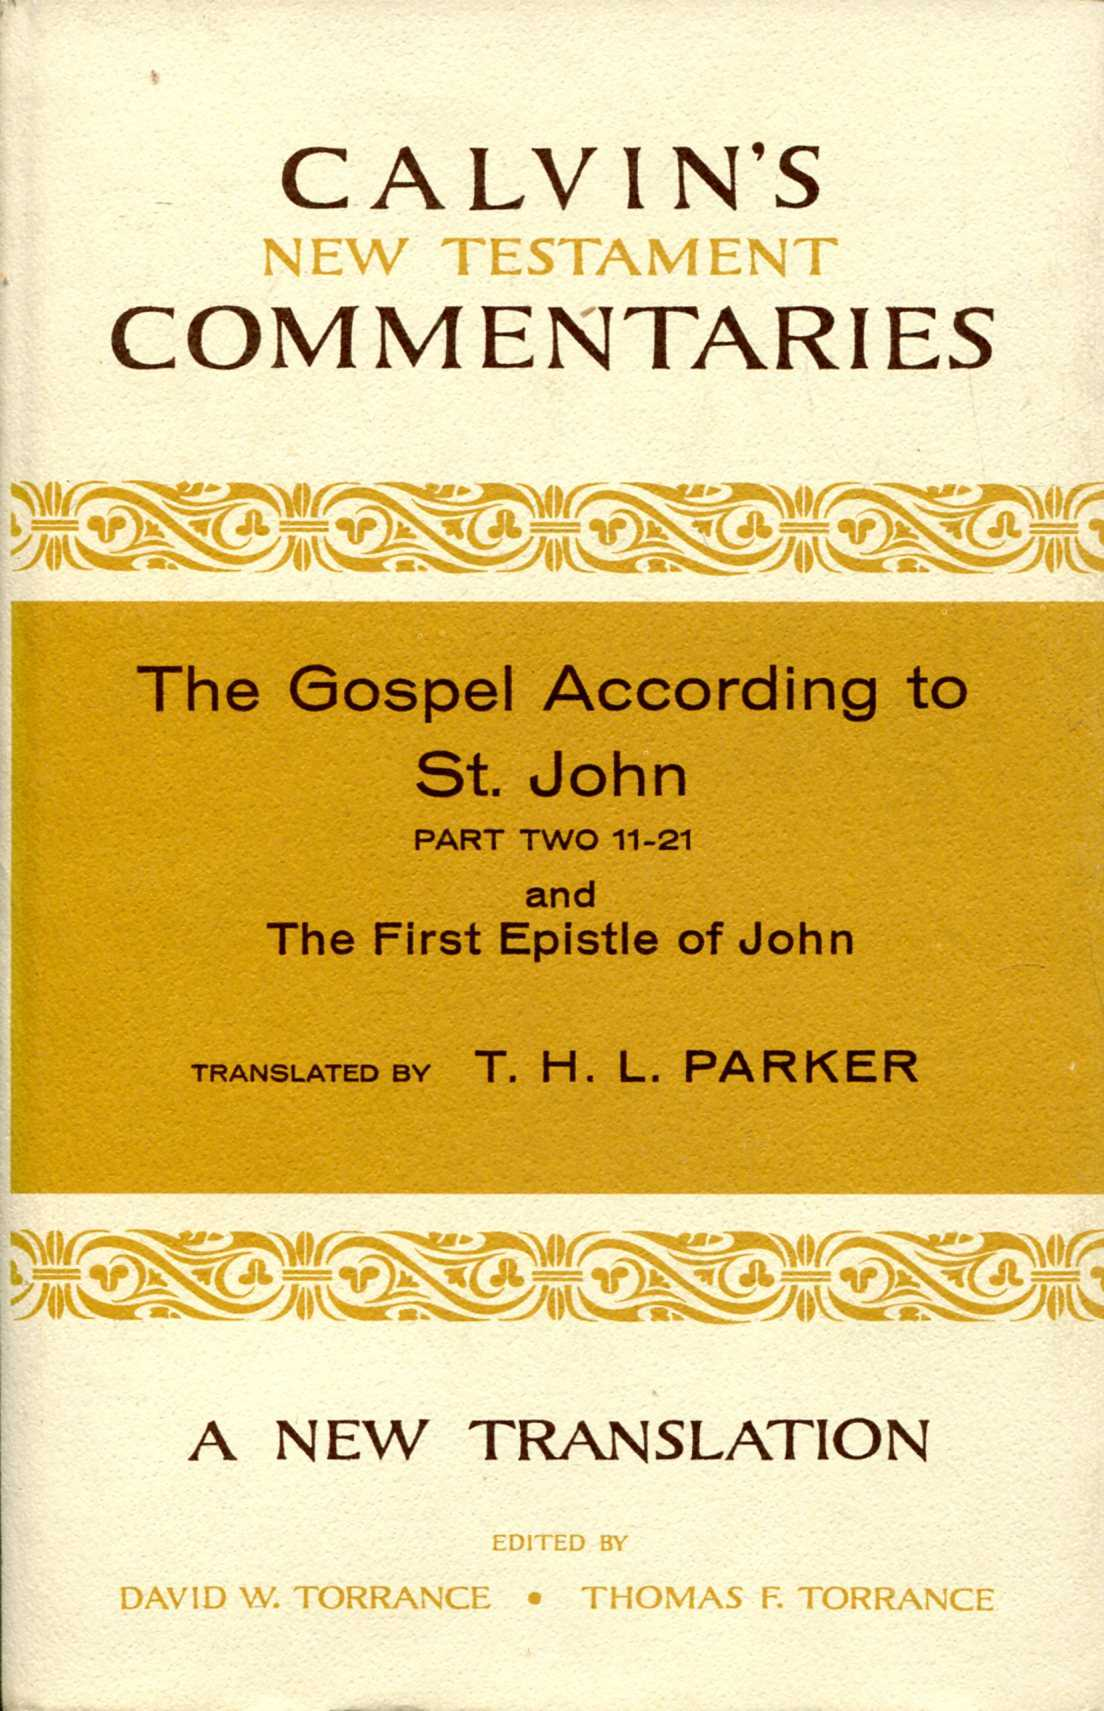 Image for The Gospel According to St. John 11-2  and The First Epistle of John (Calvin's New Testament Commentaries)